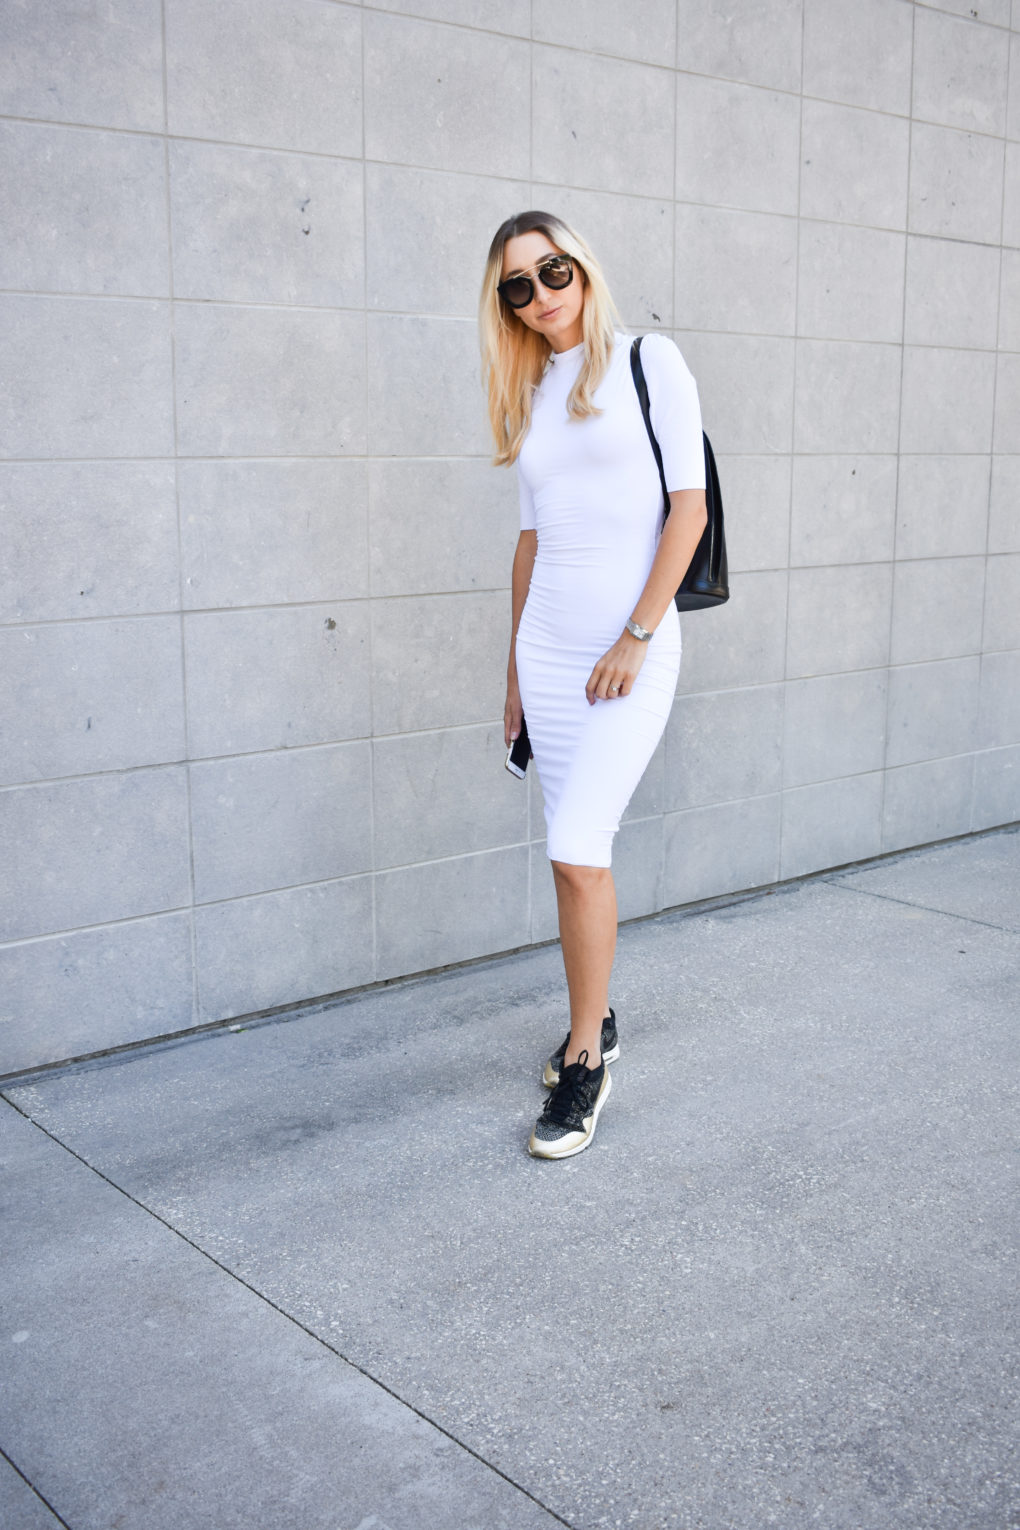 Sporty Summer Dress + Nike Air Max